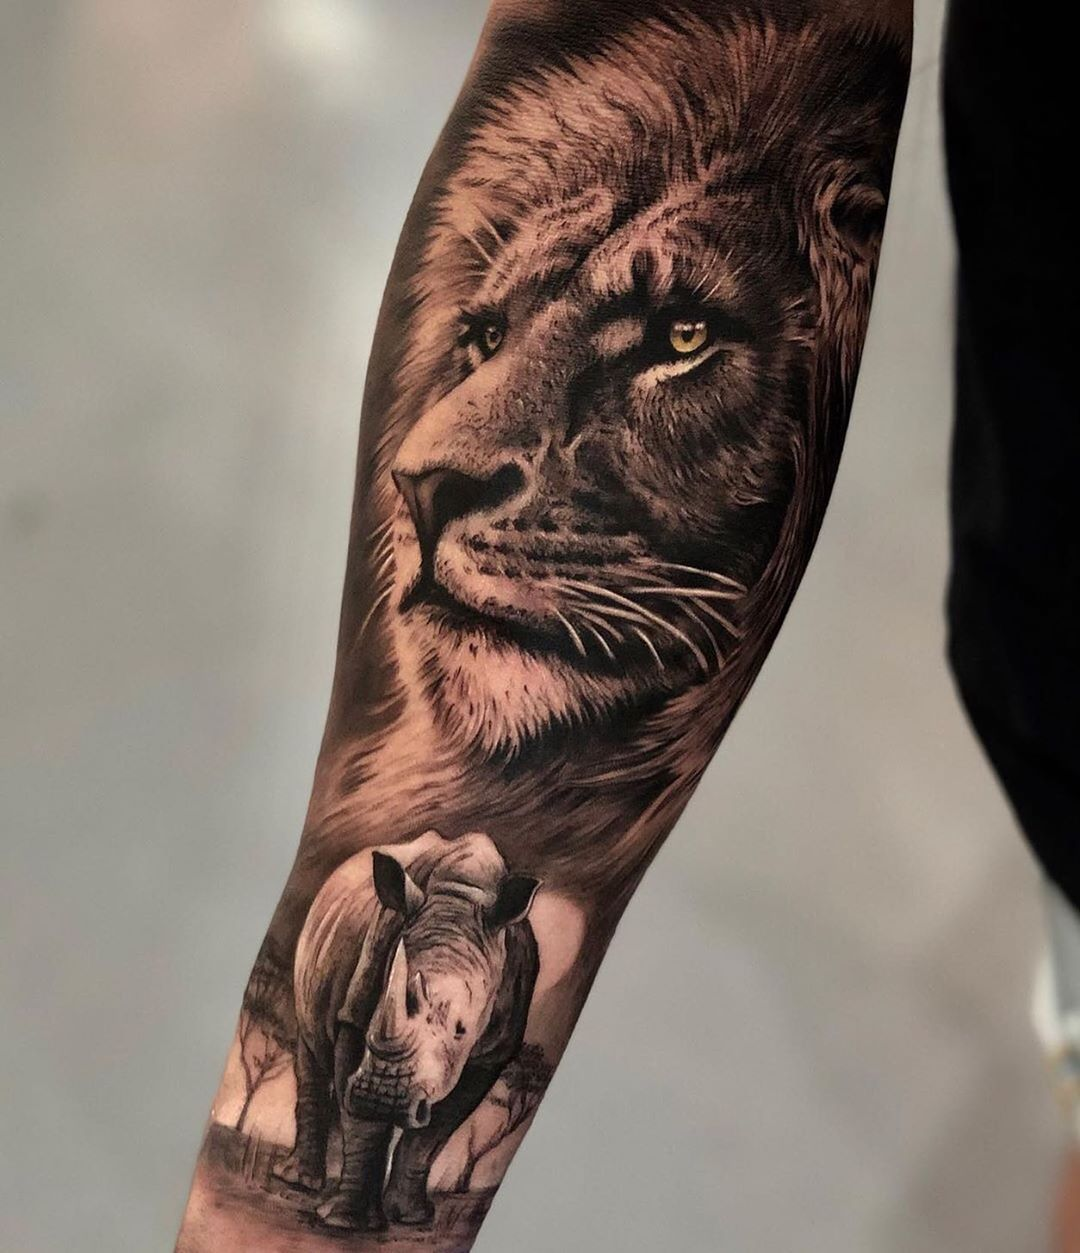 Tattoo Artwork Daily On Instagram African Wildlife Tattoo Follow Inkedair For More Wildlife Tattoo African Tattoo Animal Sleeve Tattoo